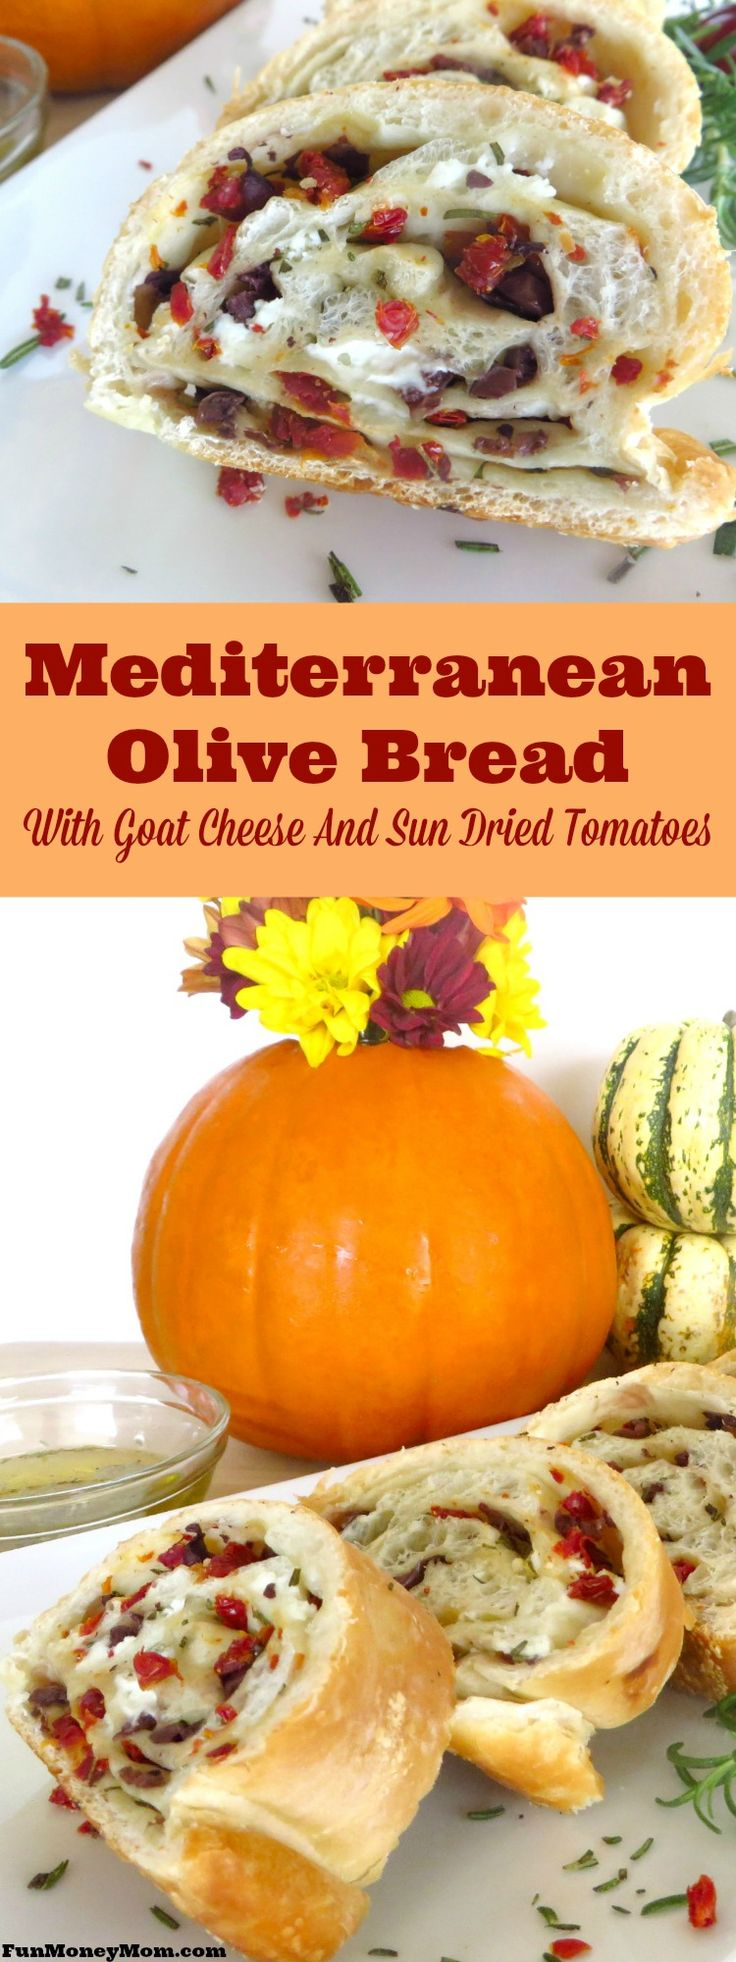 This Mediterranean Olive Bread with goat cheese and sun dried tomatoes pairs perfectly with just about any meal.